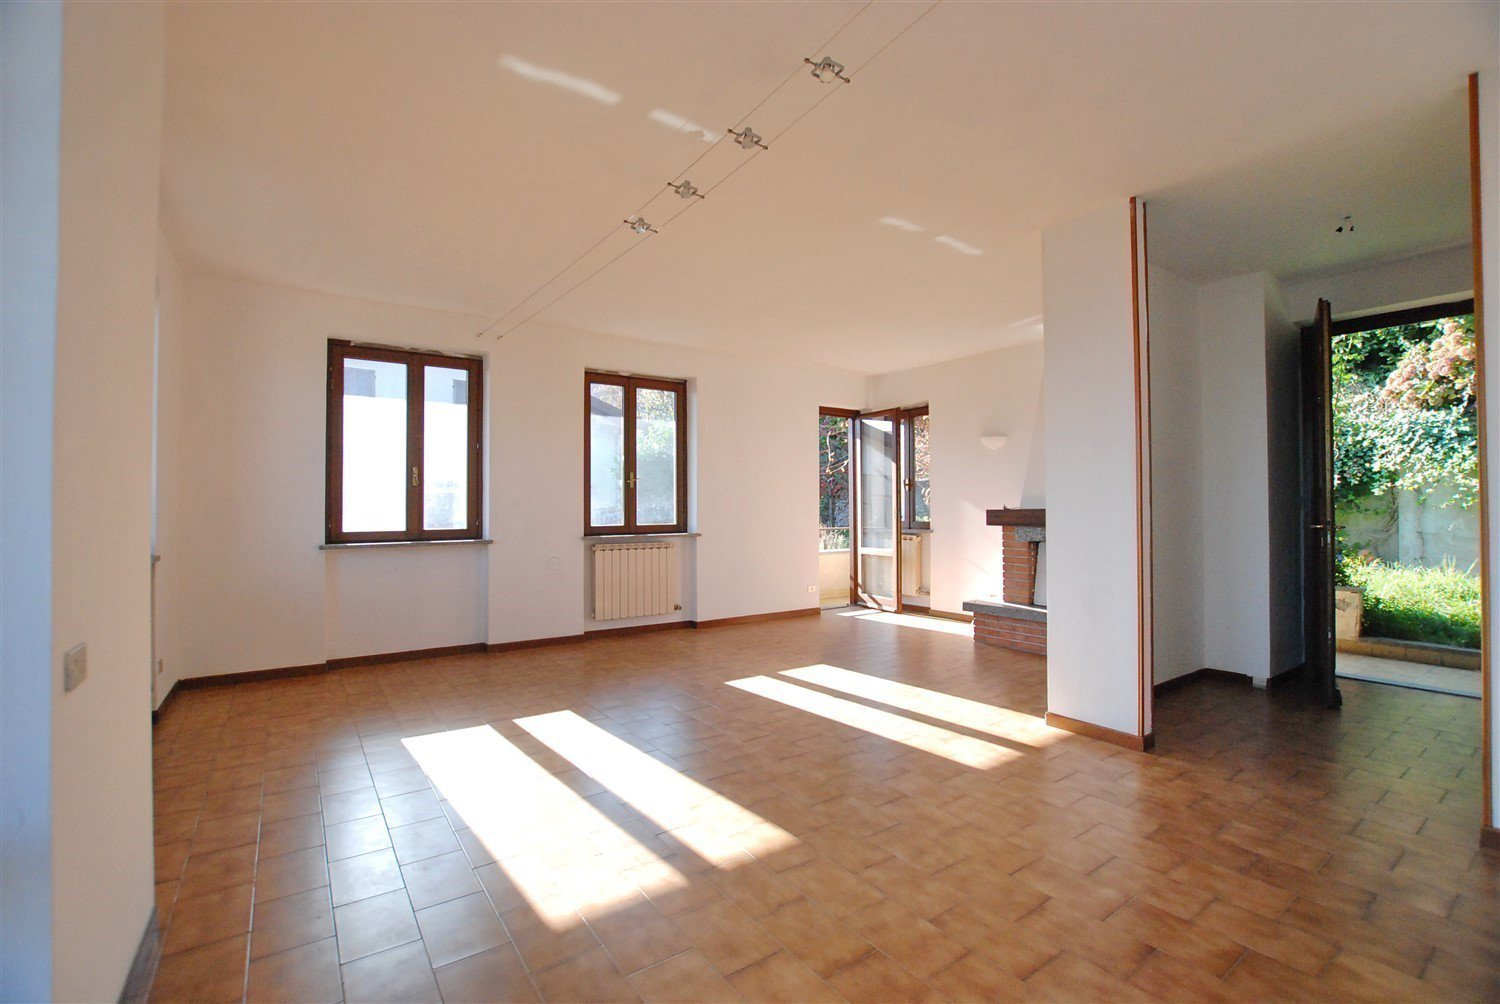 Apartment for sale in Belgirate - living room